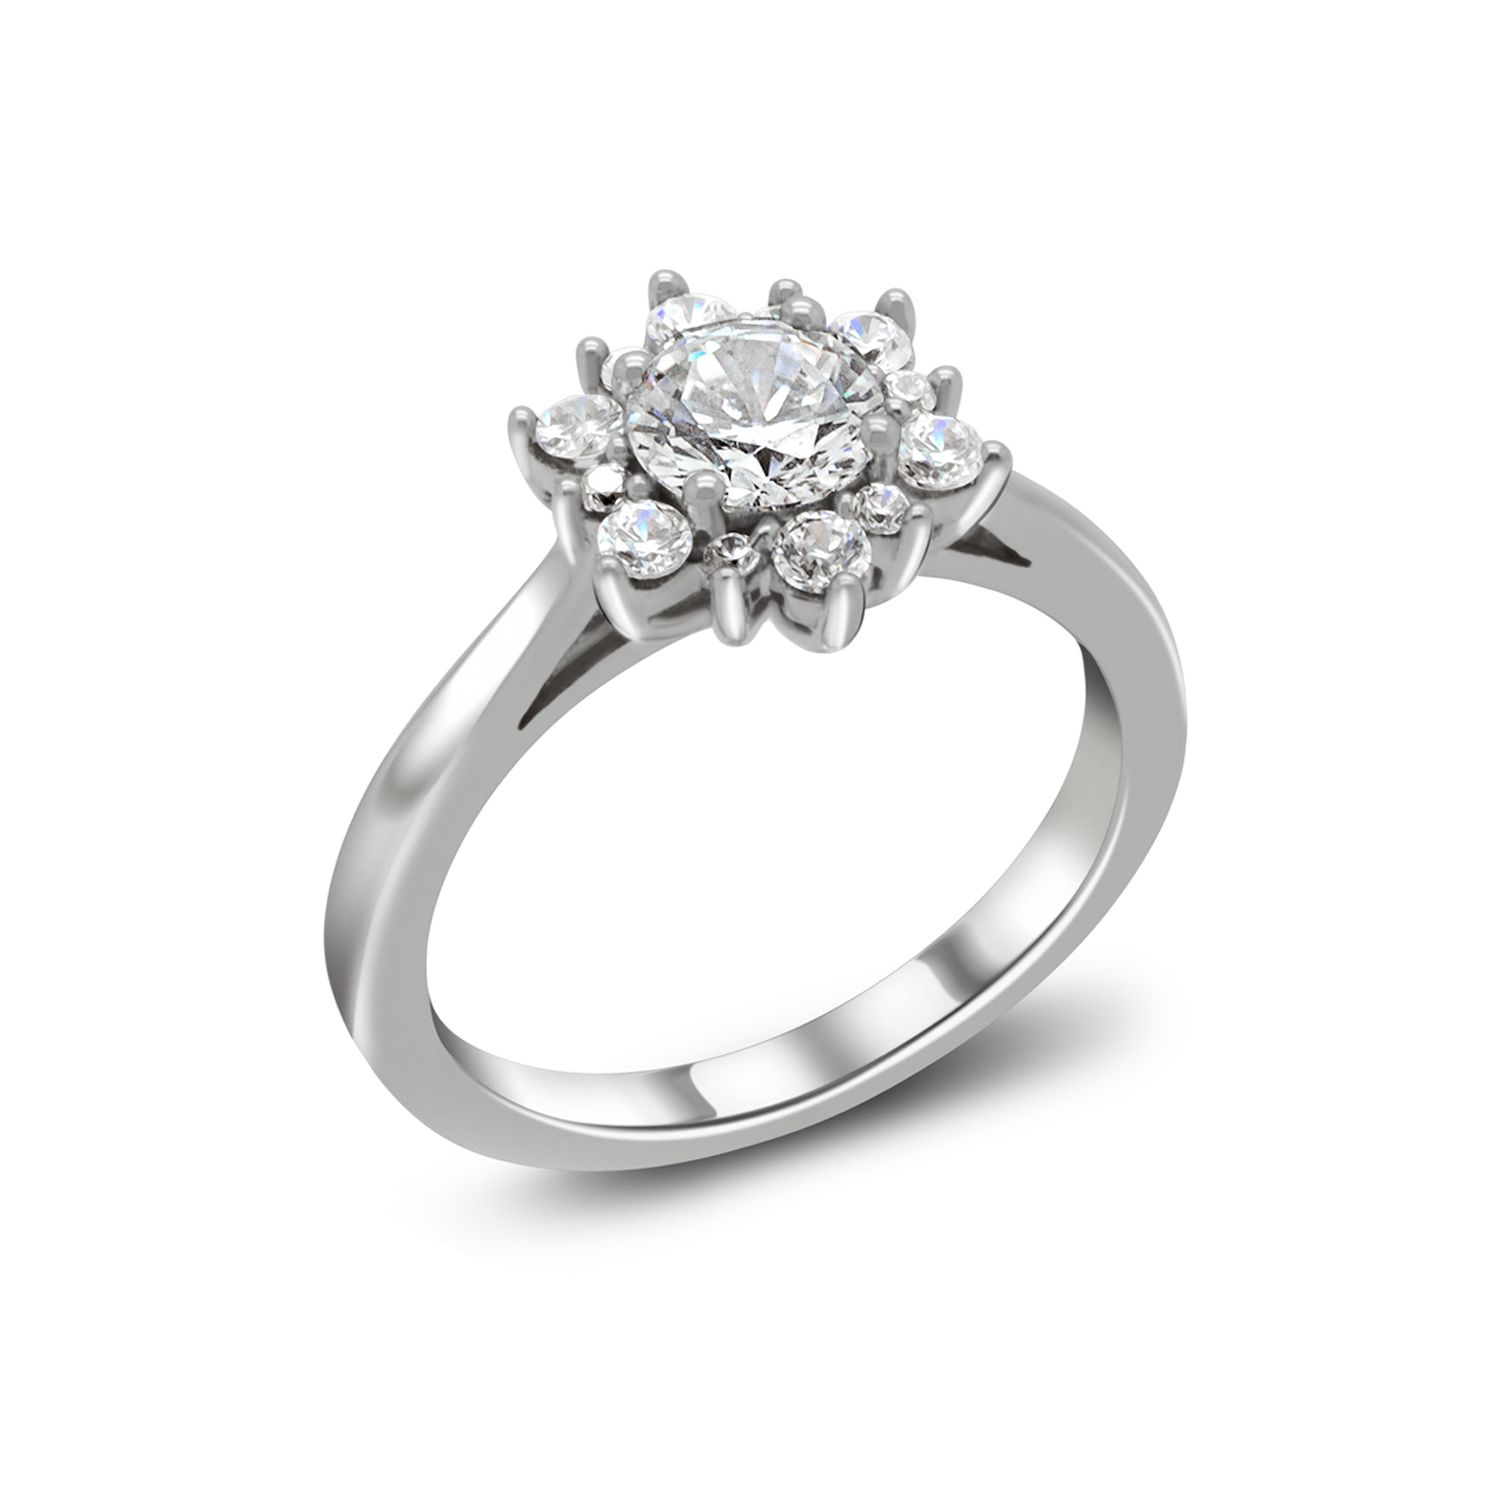 Queen Elsa Inspired Engagement Ring from Enchanted Disney Fine